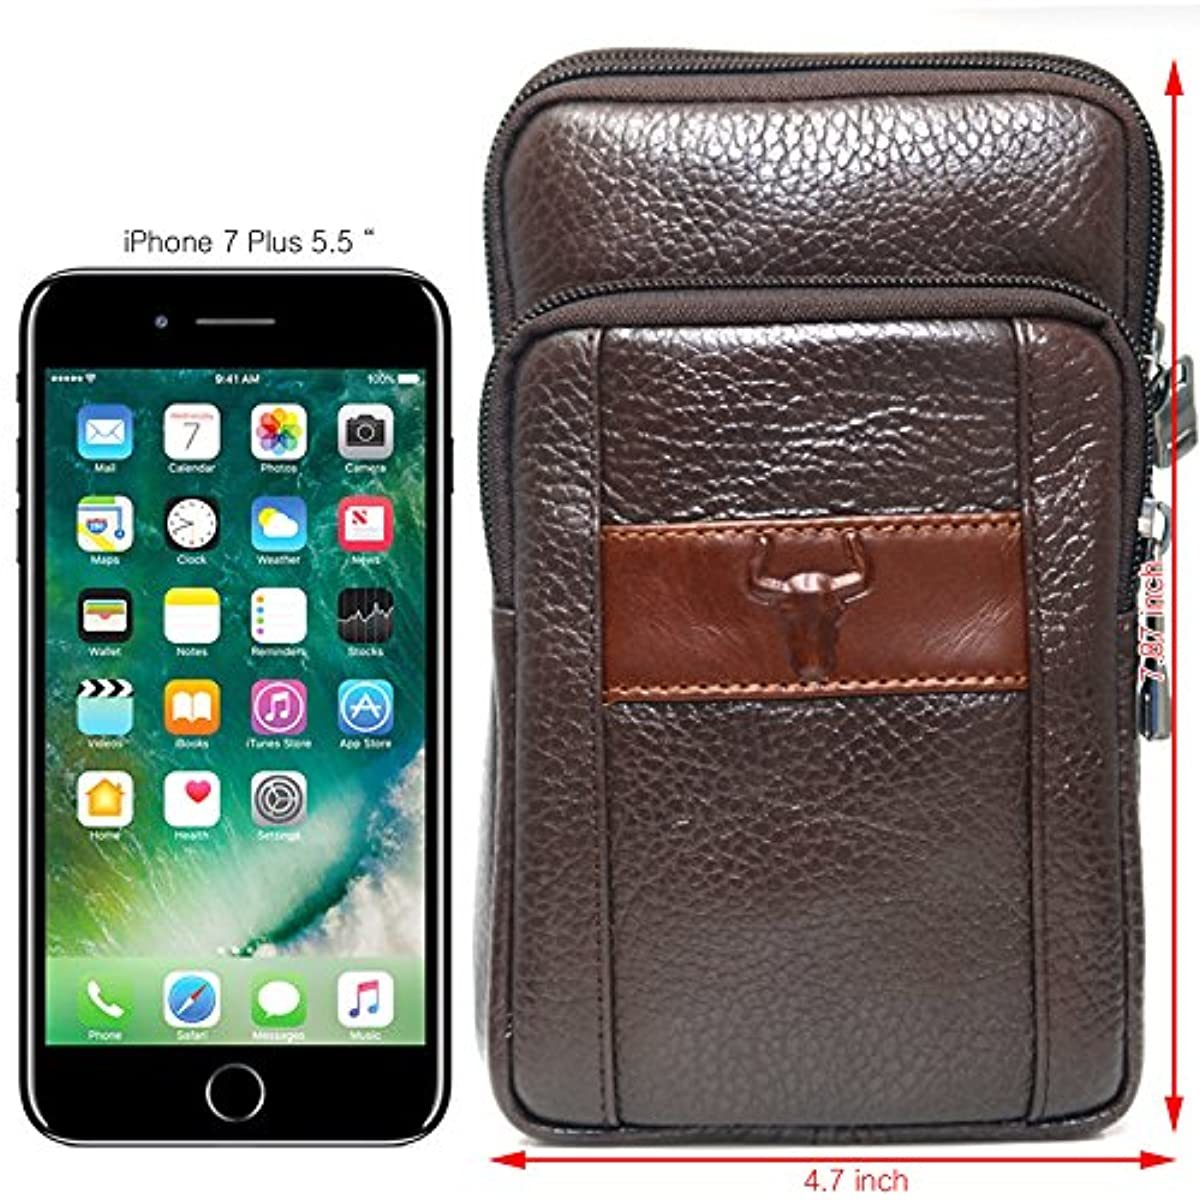 Messenger Bags Tactical Phone Bag Pouch Bum Brown Leather Bag Waist Pack Travel Bags Cases Holsters Saddlebag 9368 - ENCACC